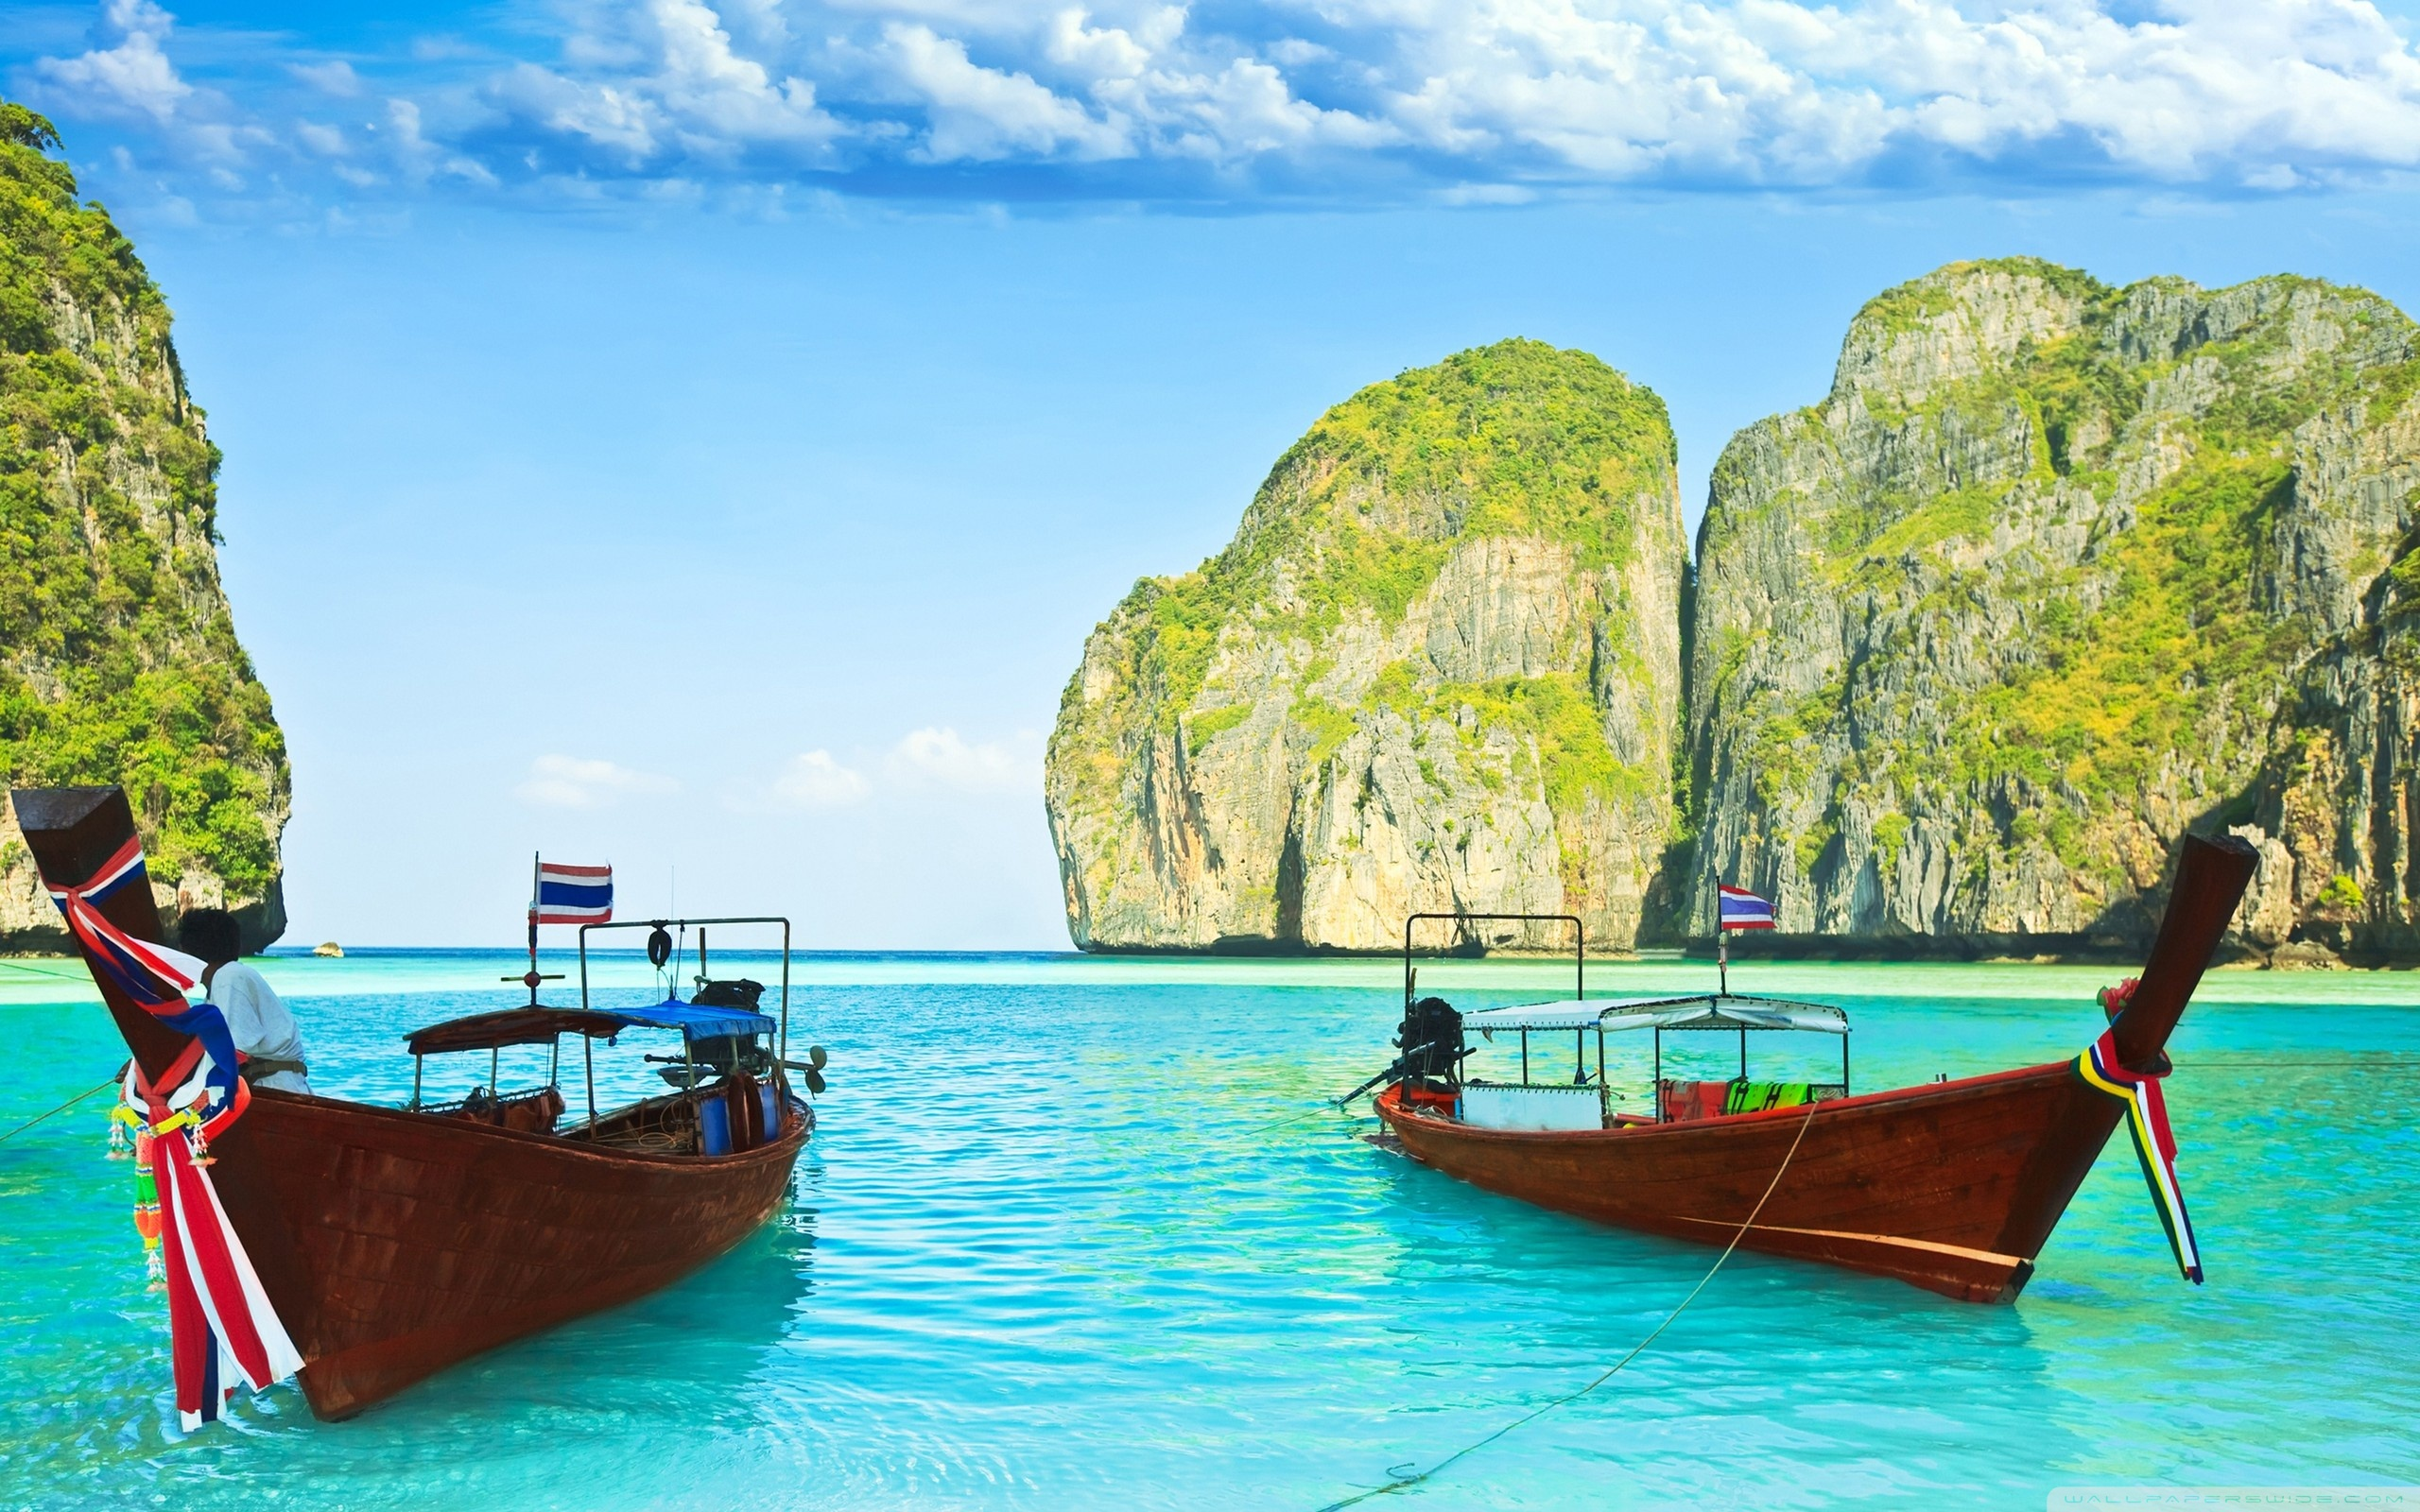 Maya Bay, Thailand HD desktop wallpaper : High Definition